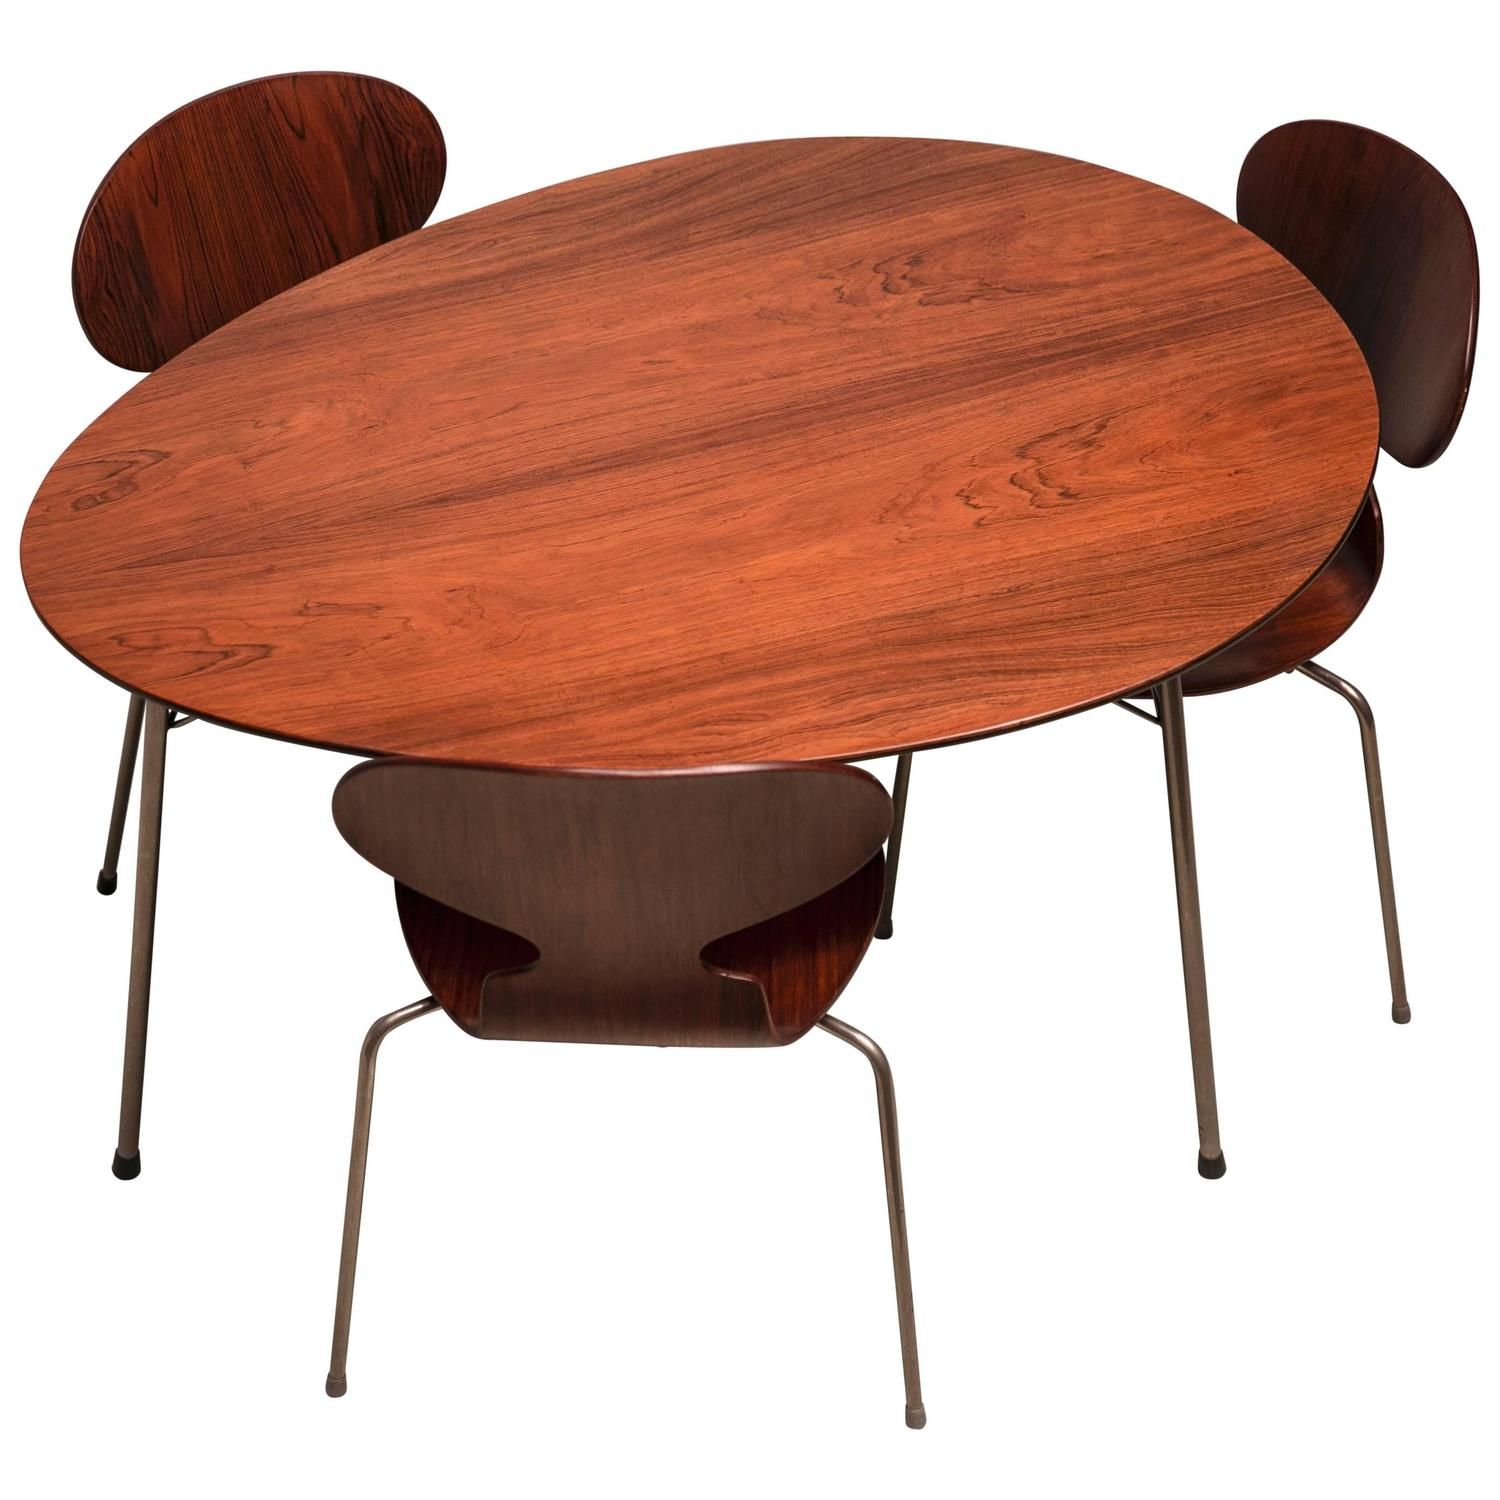 Arne Jacobsen Exceptional Early Brazilian Rosewood Egg Table And Ant Chairs By Arne Jacobsen